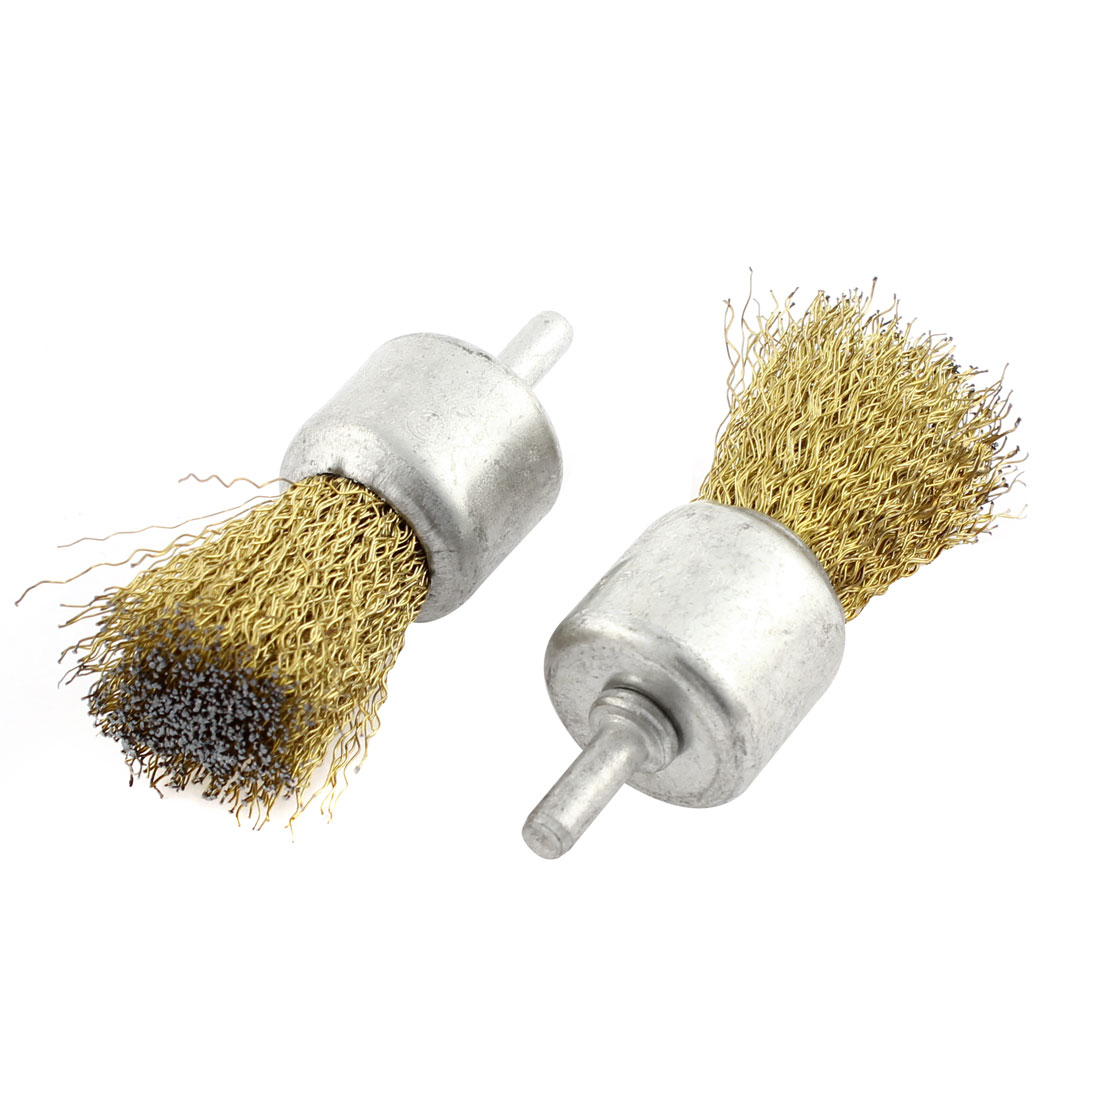 28 x 30mm Steel Wire Pen Shape Polishing Grinding Brush Rotary Tool 2pcs